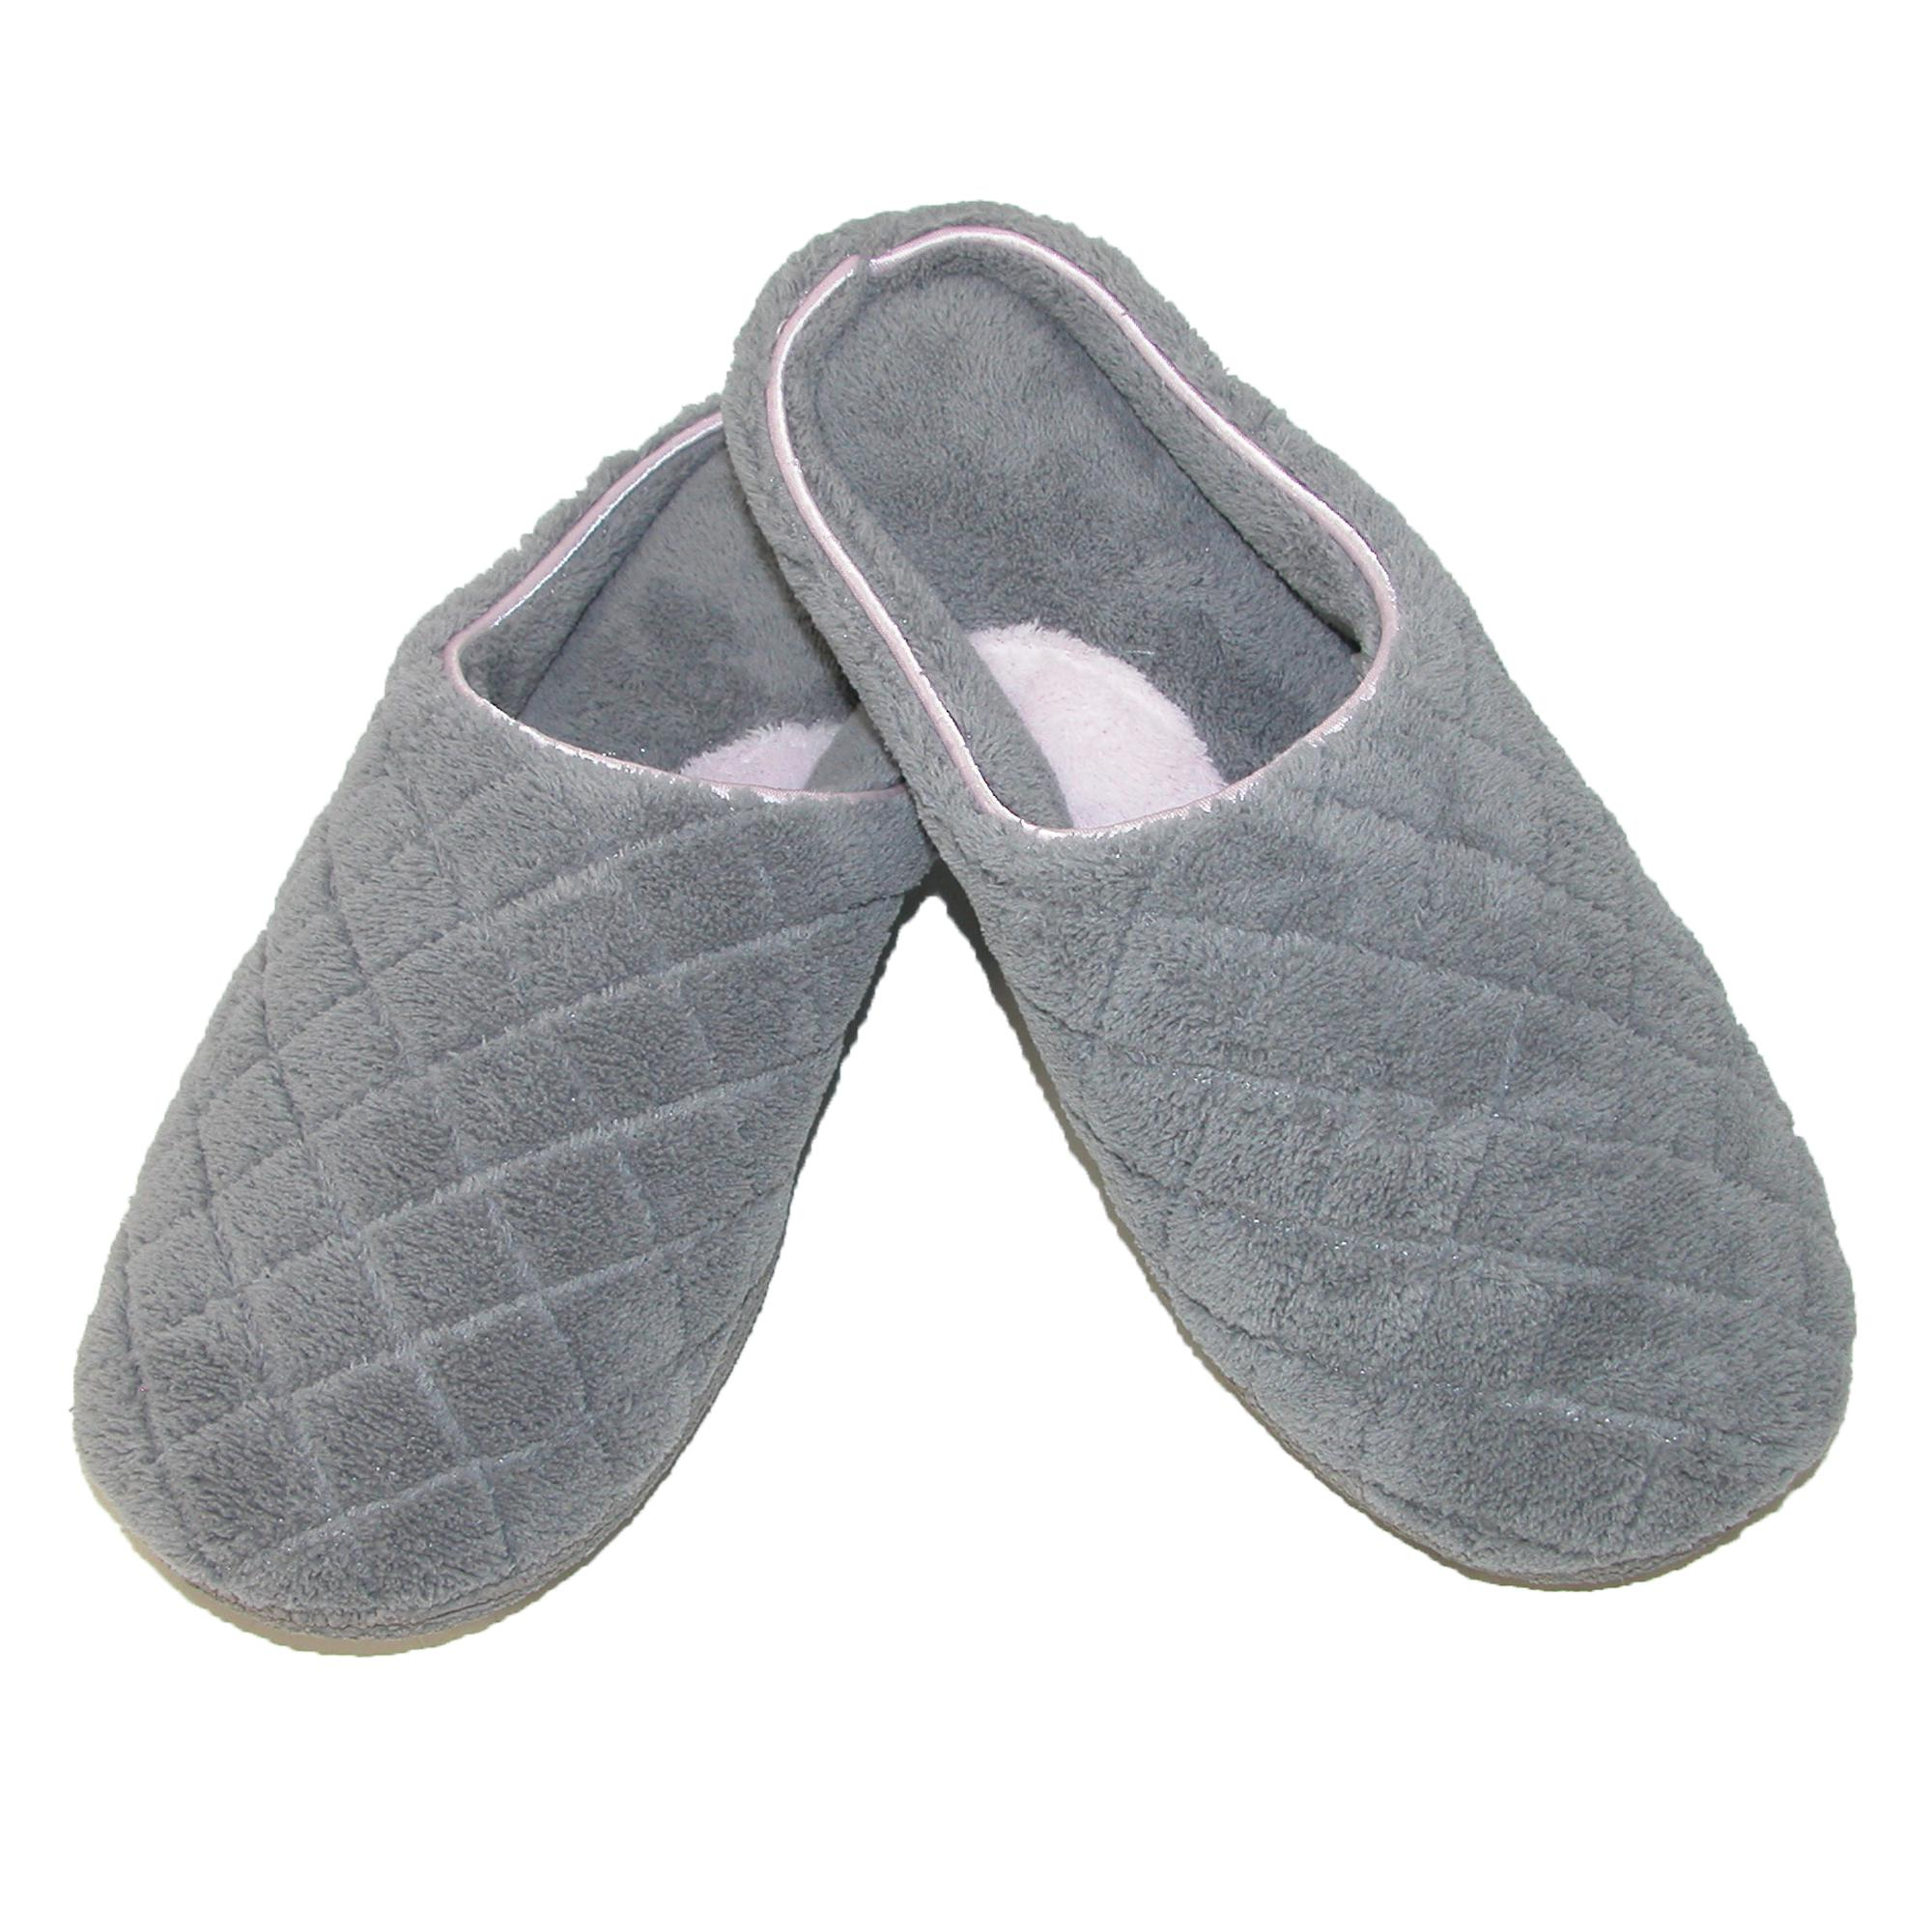 New Dearfoams Women S Quilted Microfiber Terry Clog Slipper